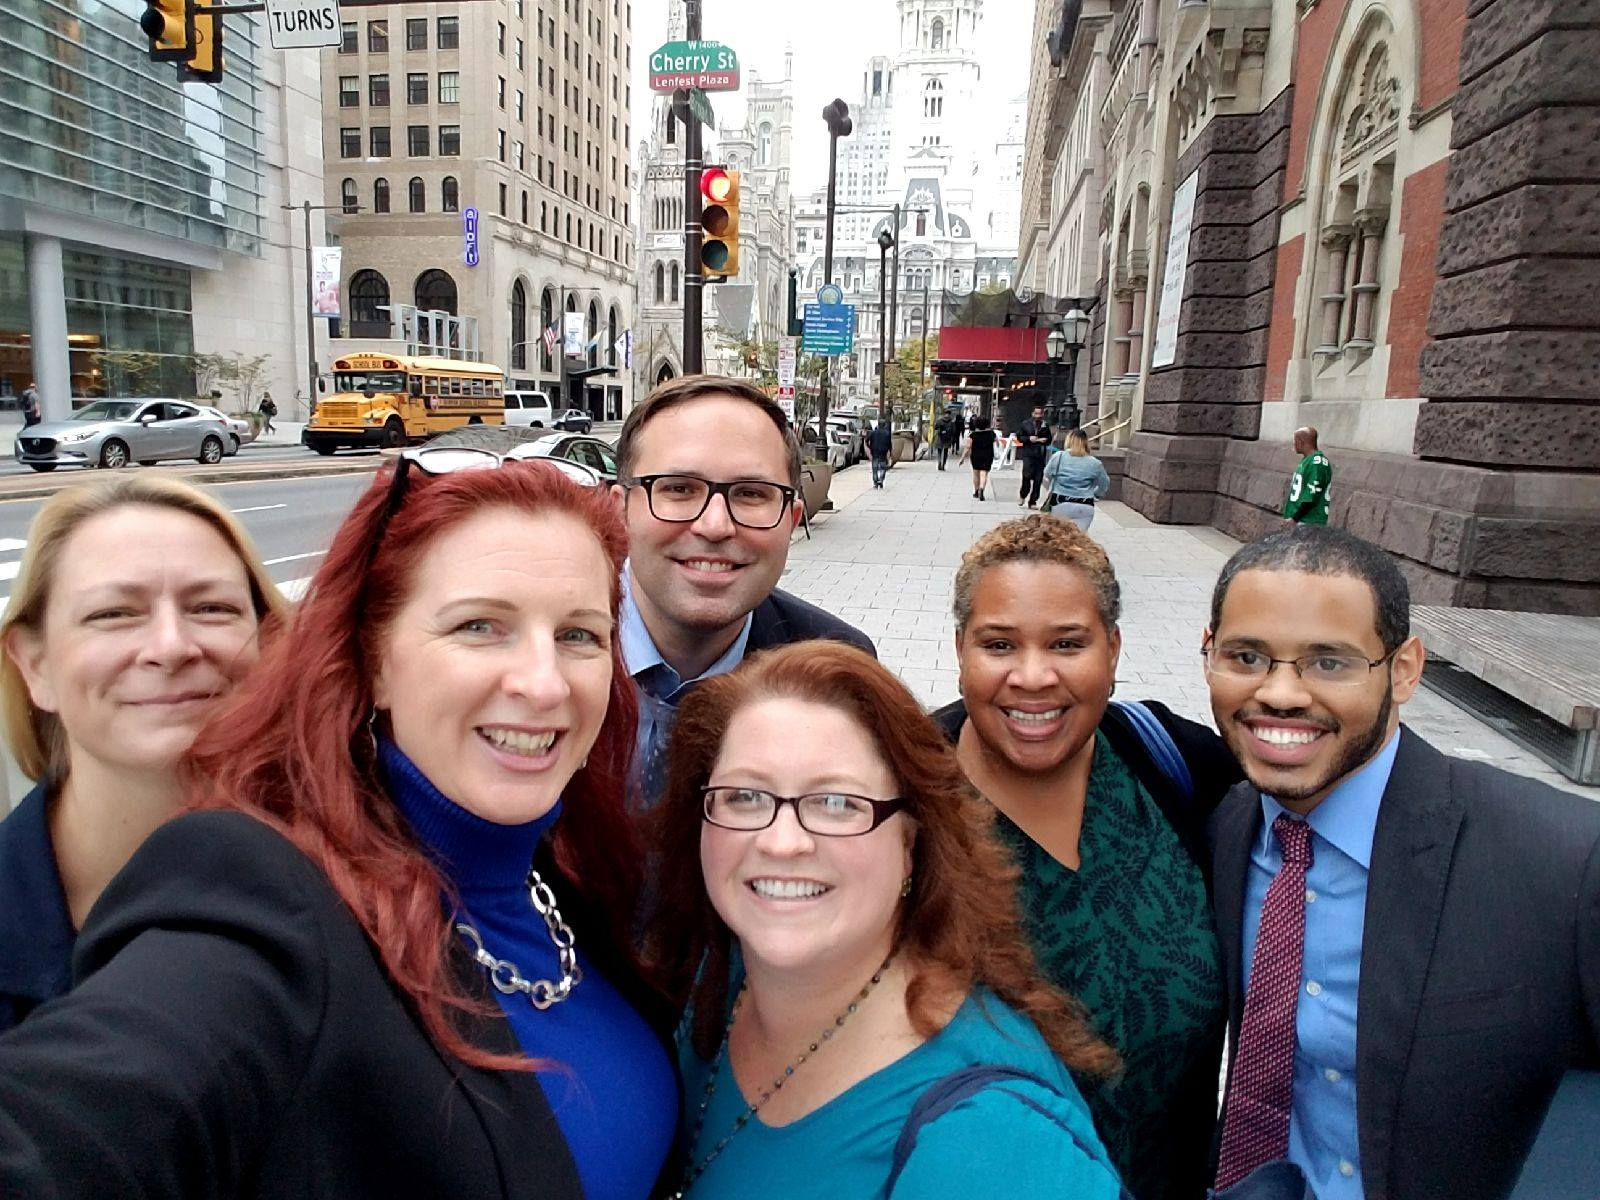 In early November 2017, James joined a team of career coaches and facilitators in Philadelphia assembled by Elisabeth Harney Sanders-Park, author of   The 6 Reasons You'll Get The Job   and   No One Is Unemployable   who presented to a group of 400+ Workforce Development Professionals sponsored by  Pennsylvania's CareerLink .